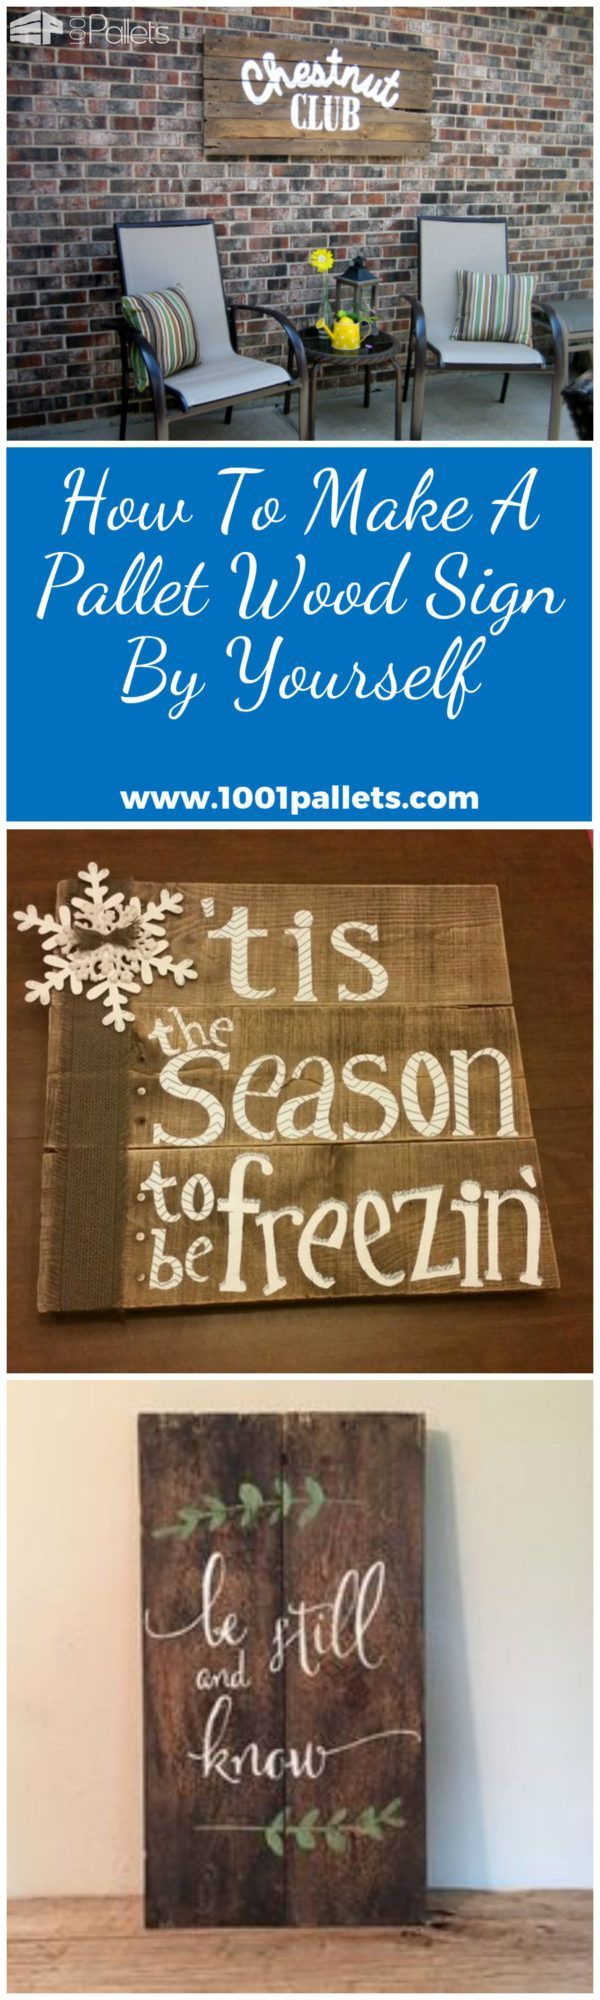 How To Make A Pallet Wood Sign By Yourself There's a never-ending list of DIY projects you could do attempt. But if you're just getting started, try one of the easier ones. Creating a simple wood sign out of recycled pallets is probably the best way to dip your toes in the DIY waters. Image source: The DIY Playbook Pallet Wood Sign, here's what...